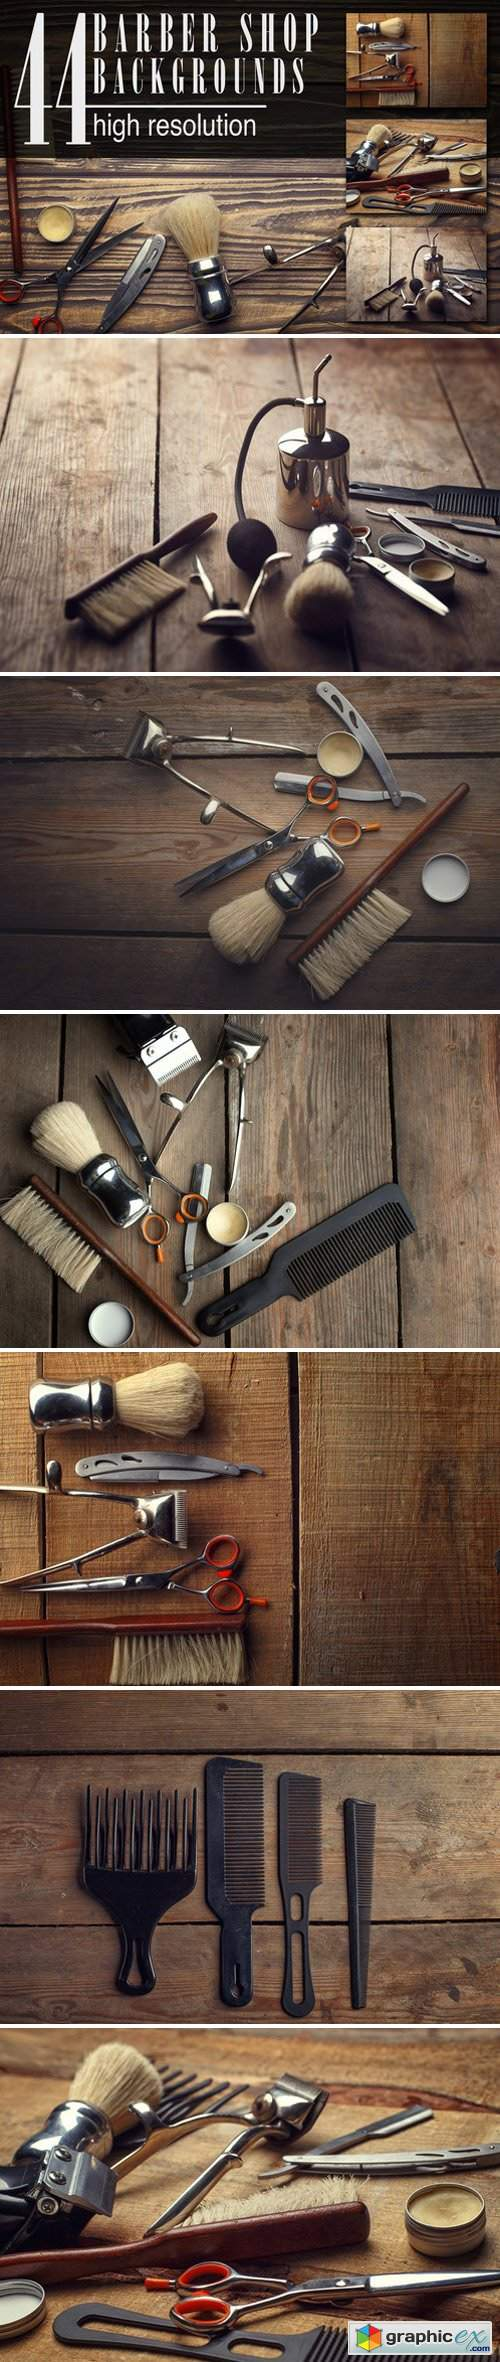 44 barber shop wooden backgrounds